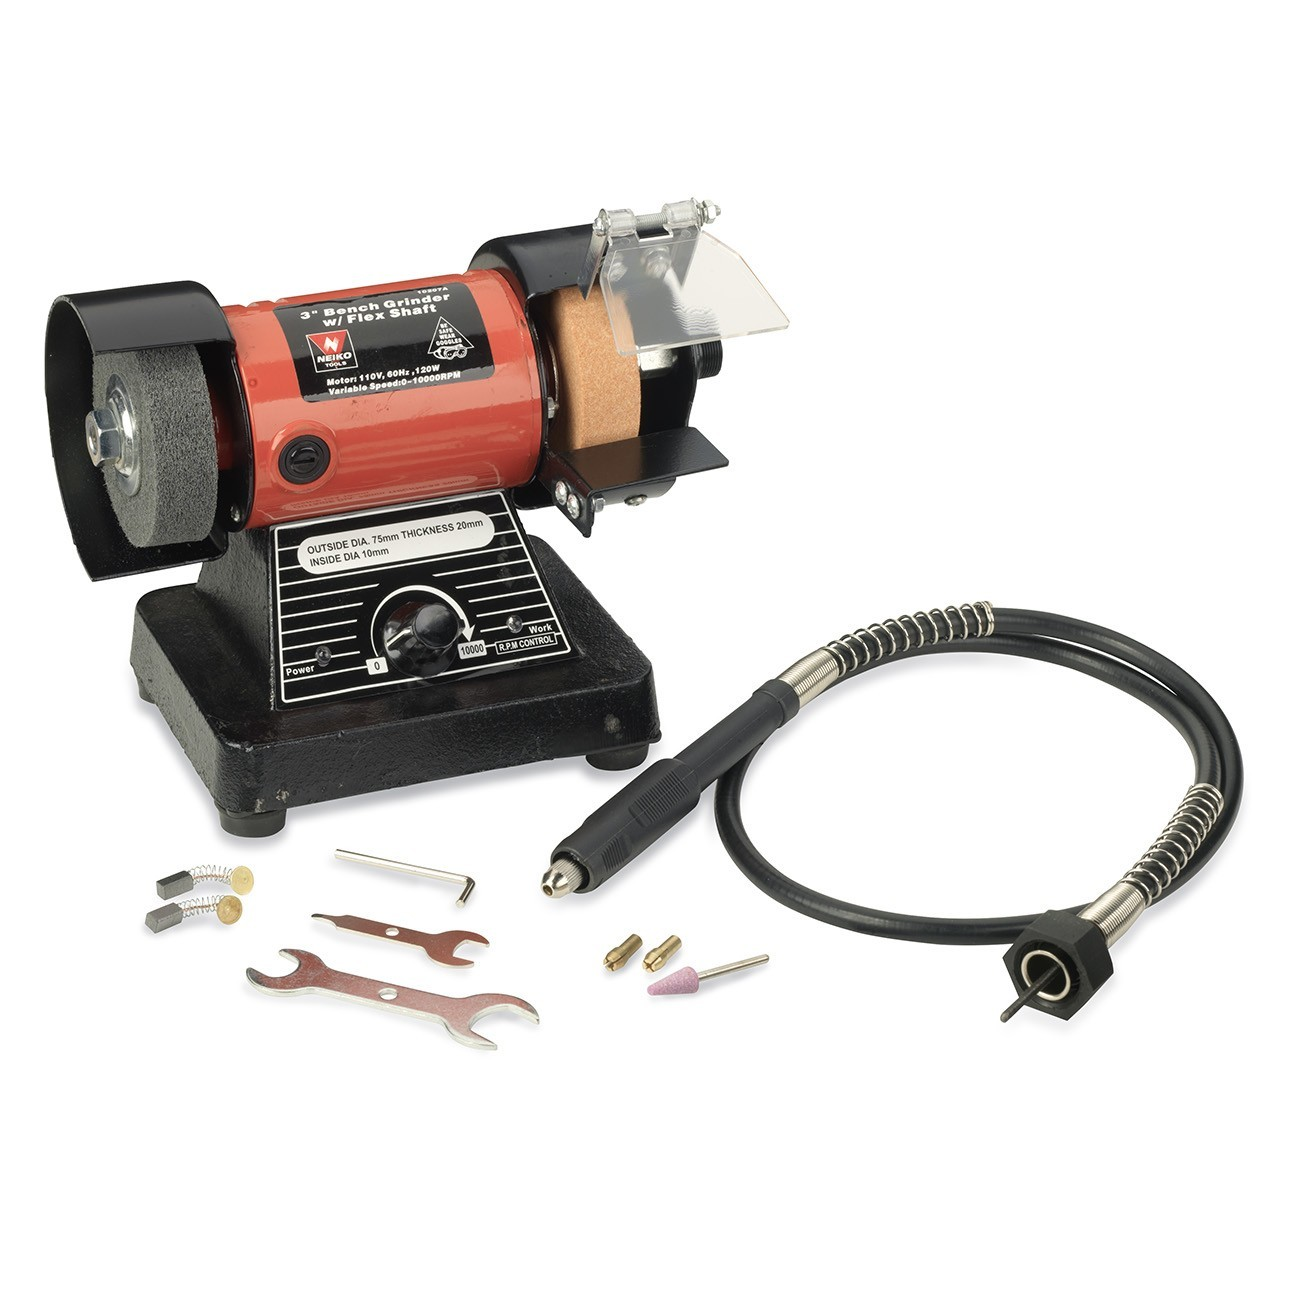 Neiko 10207A 3-Inch Mini Bench Grinder and Polisher with Flexible Shaft and Accessories |... by Neiko